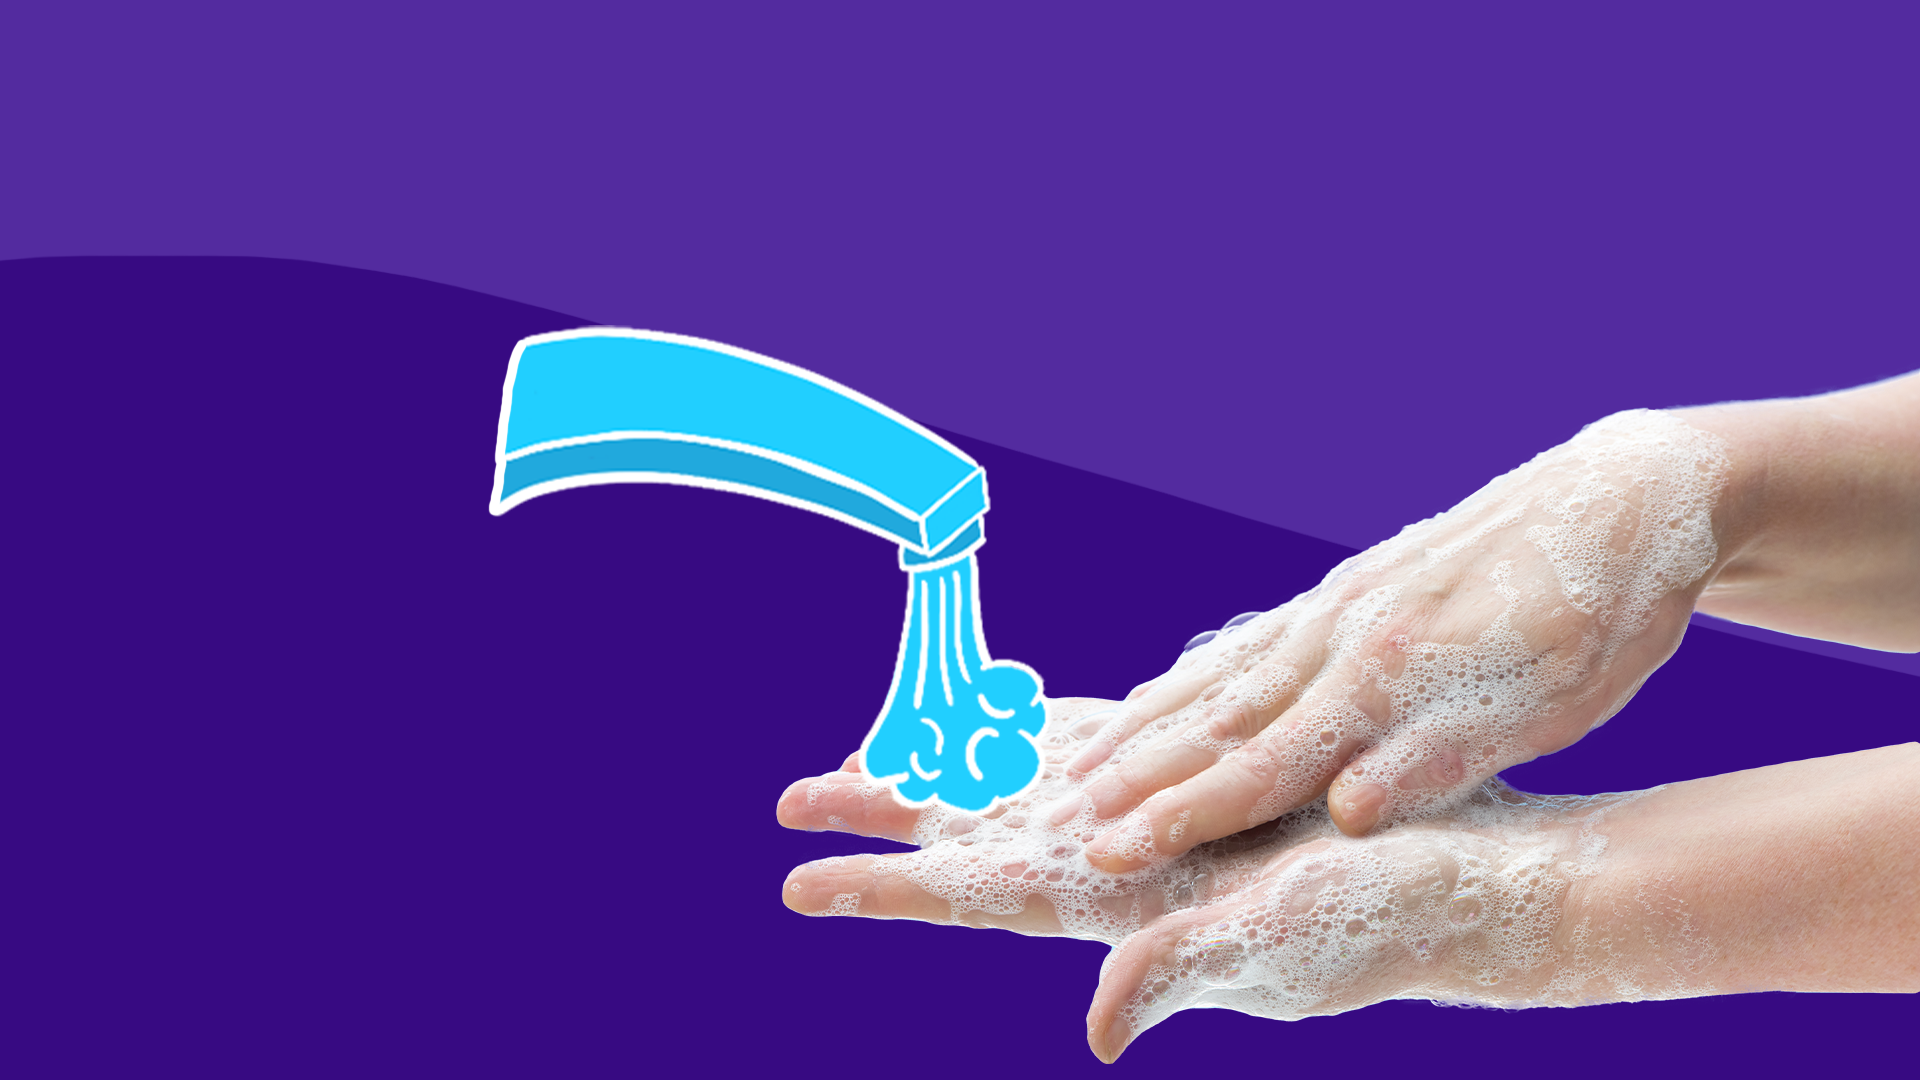 How often should you wash your hands, and what's the best way to do it?